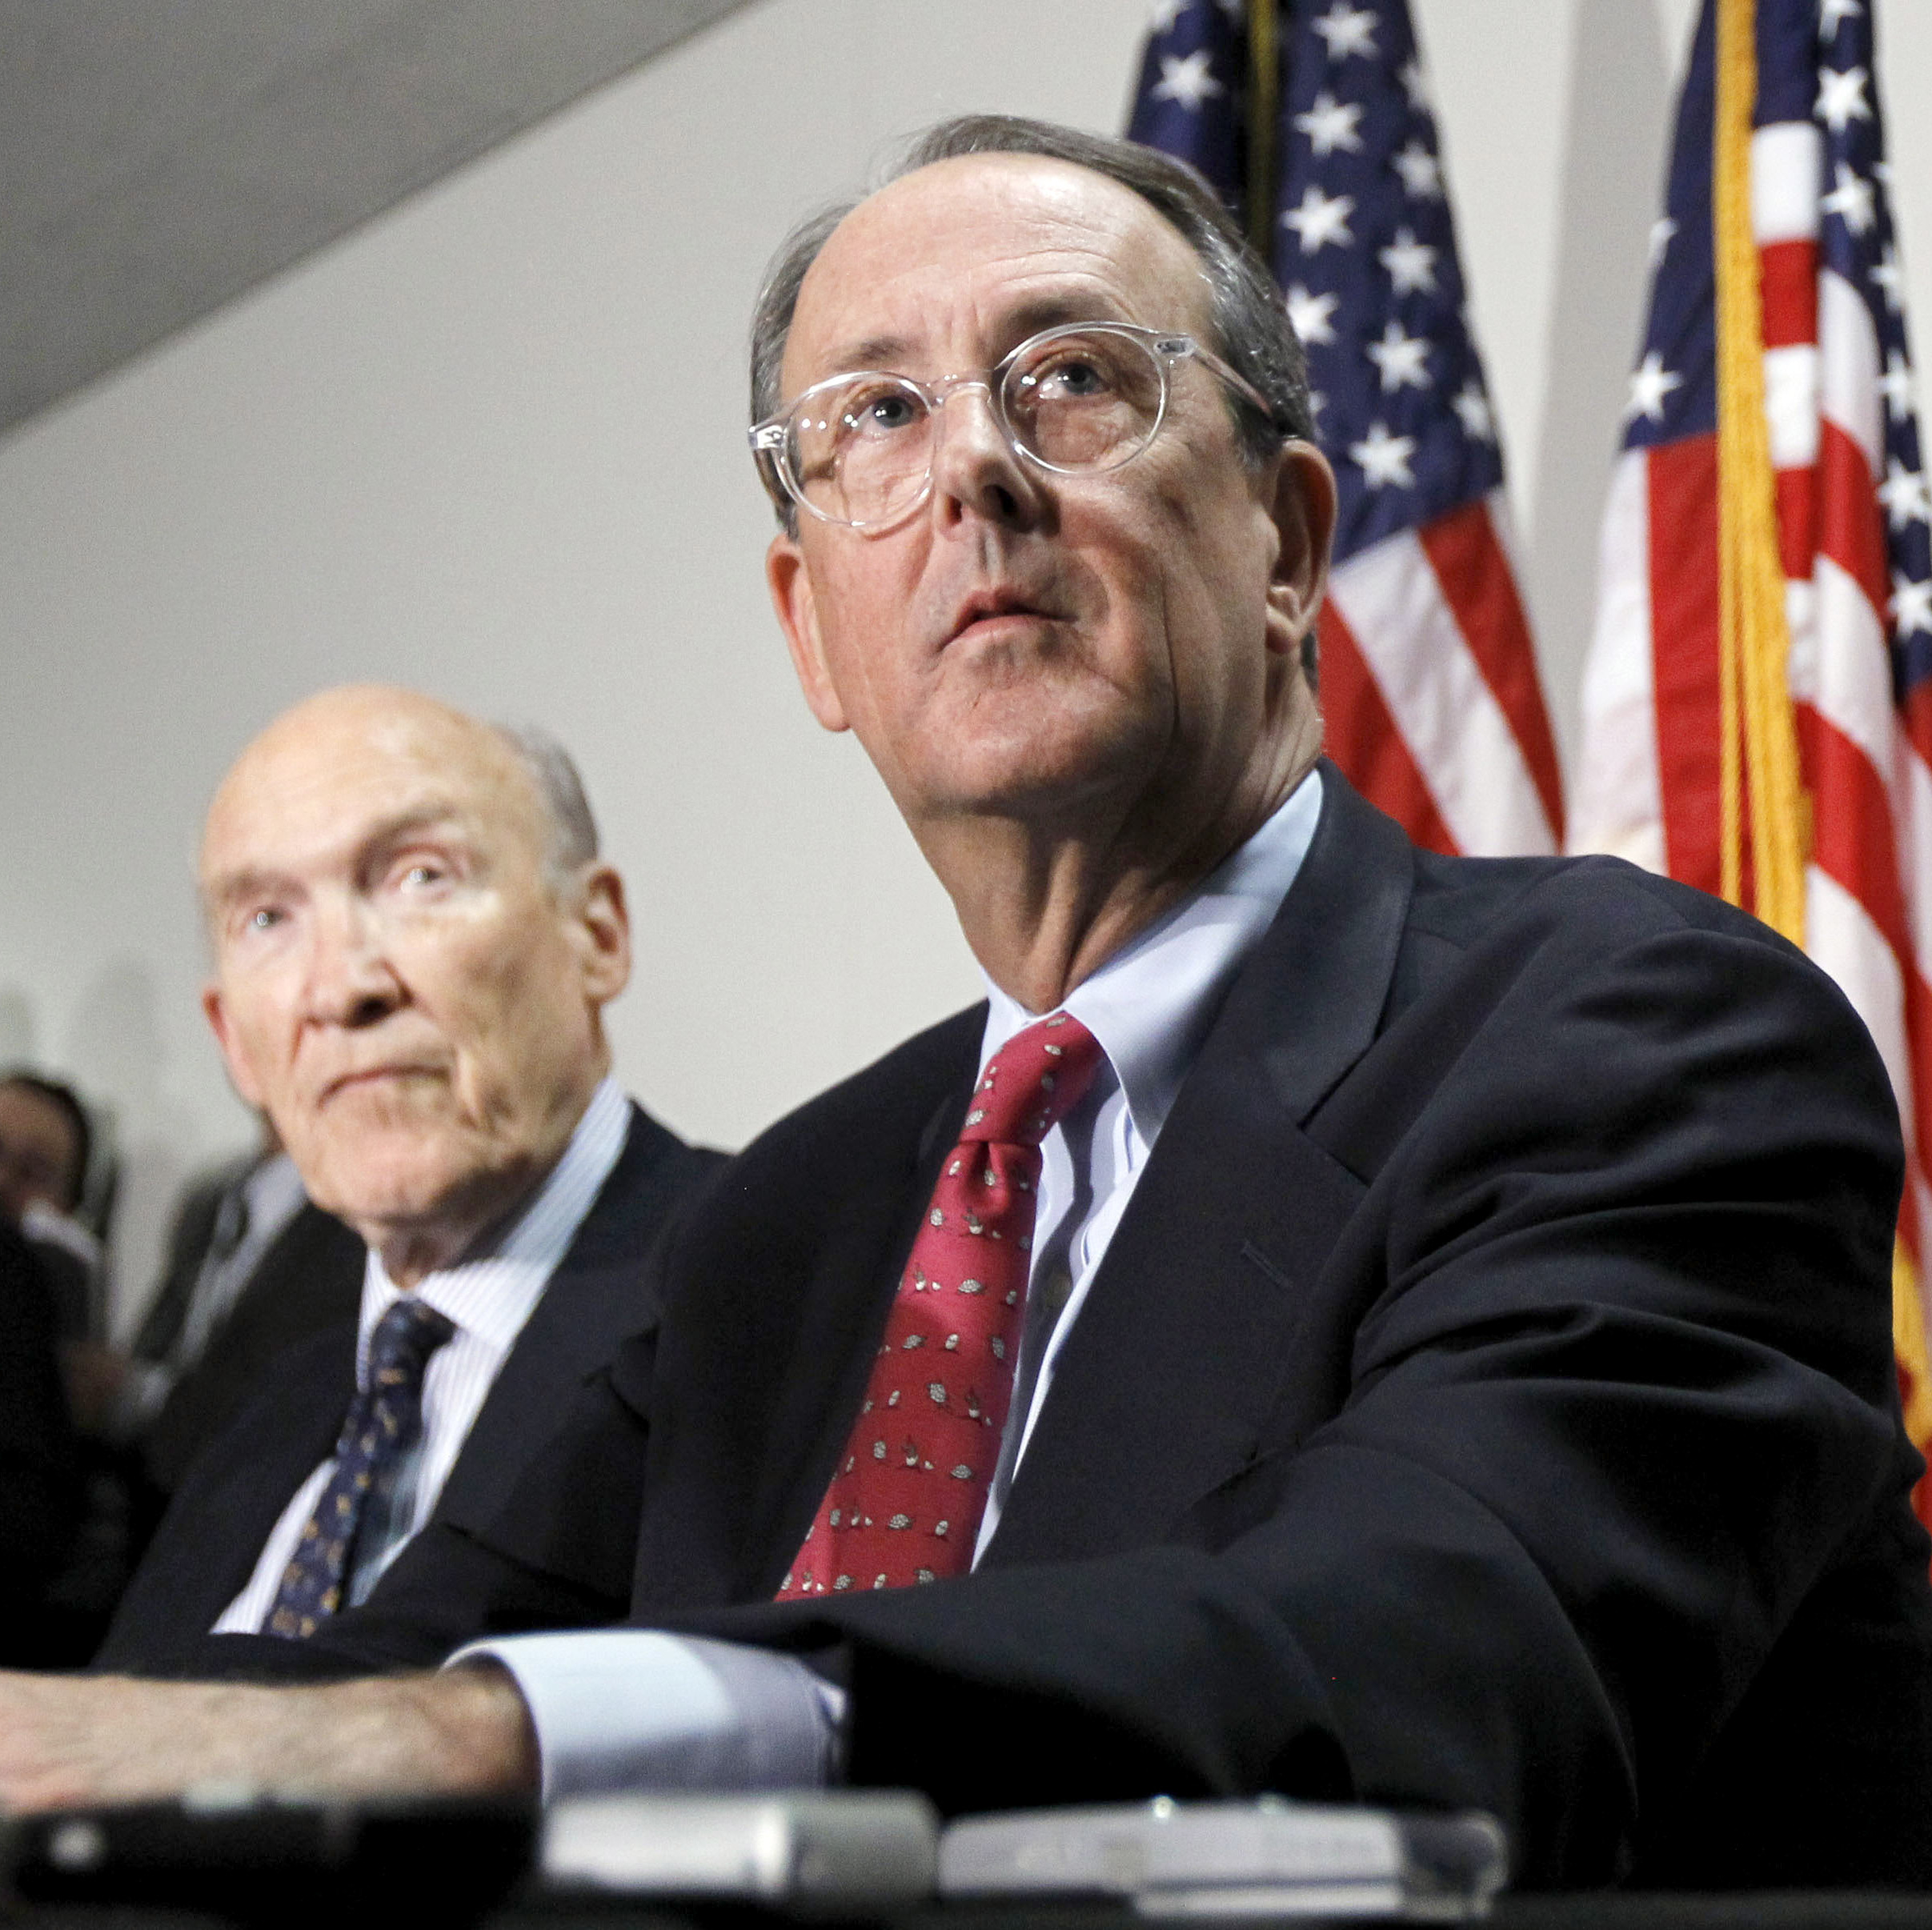 Erskine Bowles, Bill Clinton's former chief of staff and co-chairman of Obama's Simpson-Bowles deficit-reduction commission, is also a potential candidate for treasury secretary. Bowles (right) is 57.